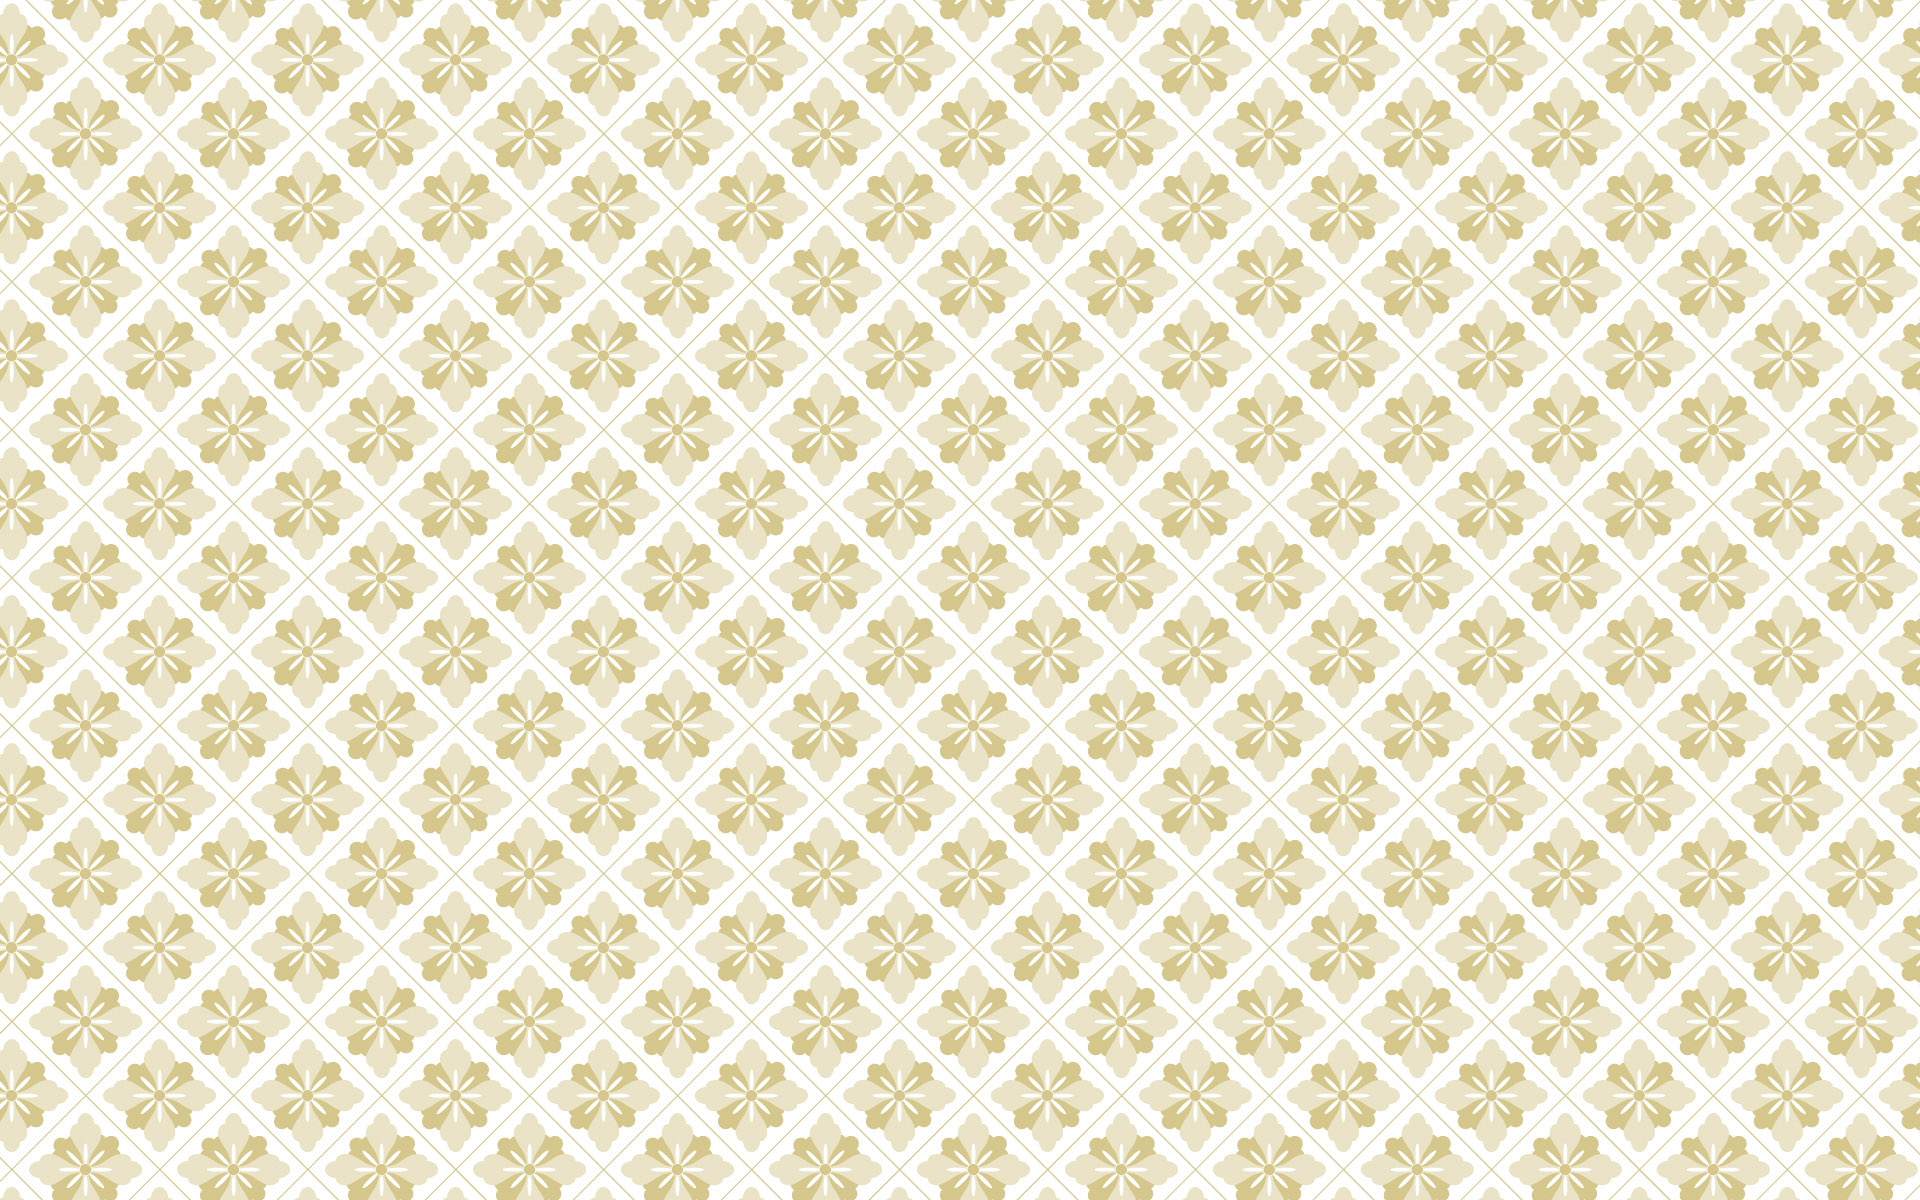 Tiled Background Patterns Vol.2 No.13